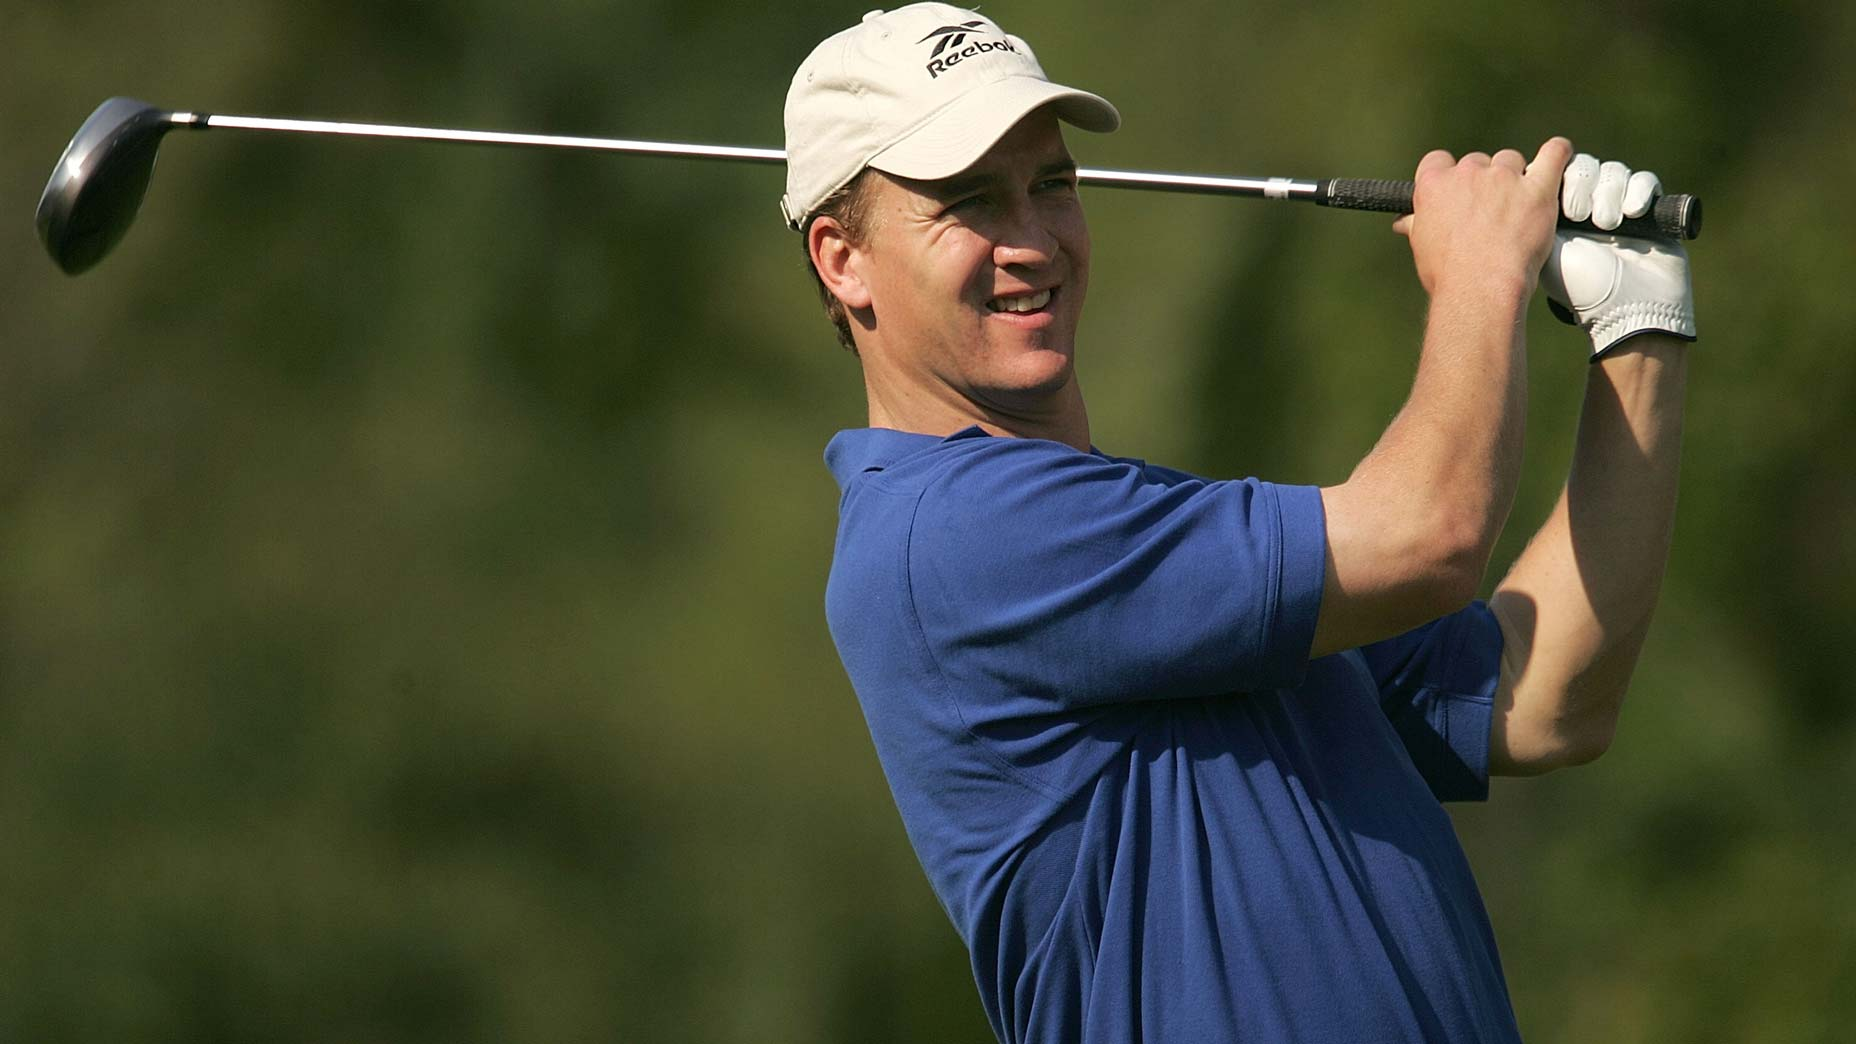 peyton manning swings